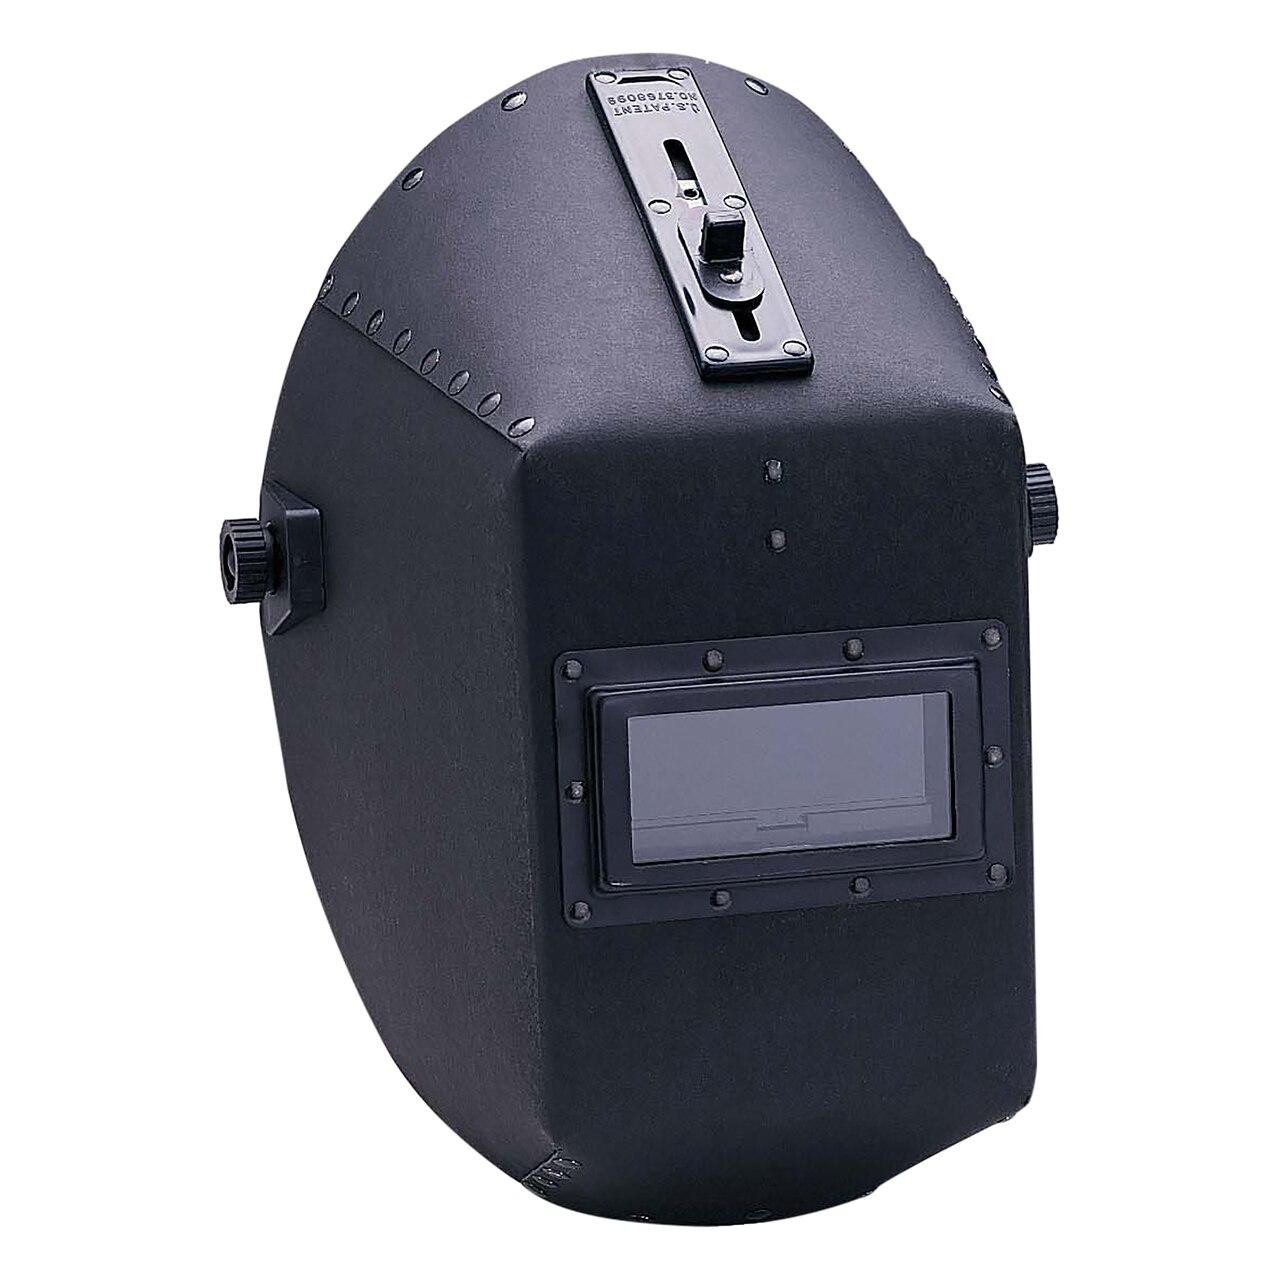 Huntsman 490P Fiber Shell Welding Helmet with Flick-of-the-finger Quick Slide Glassholder